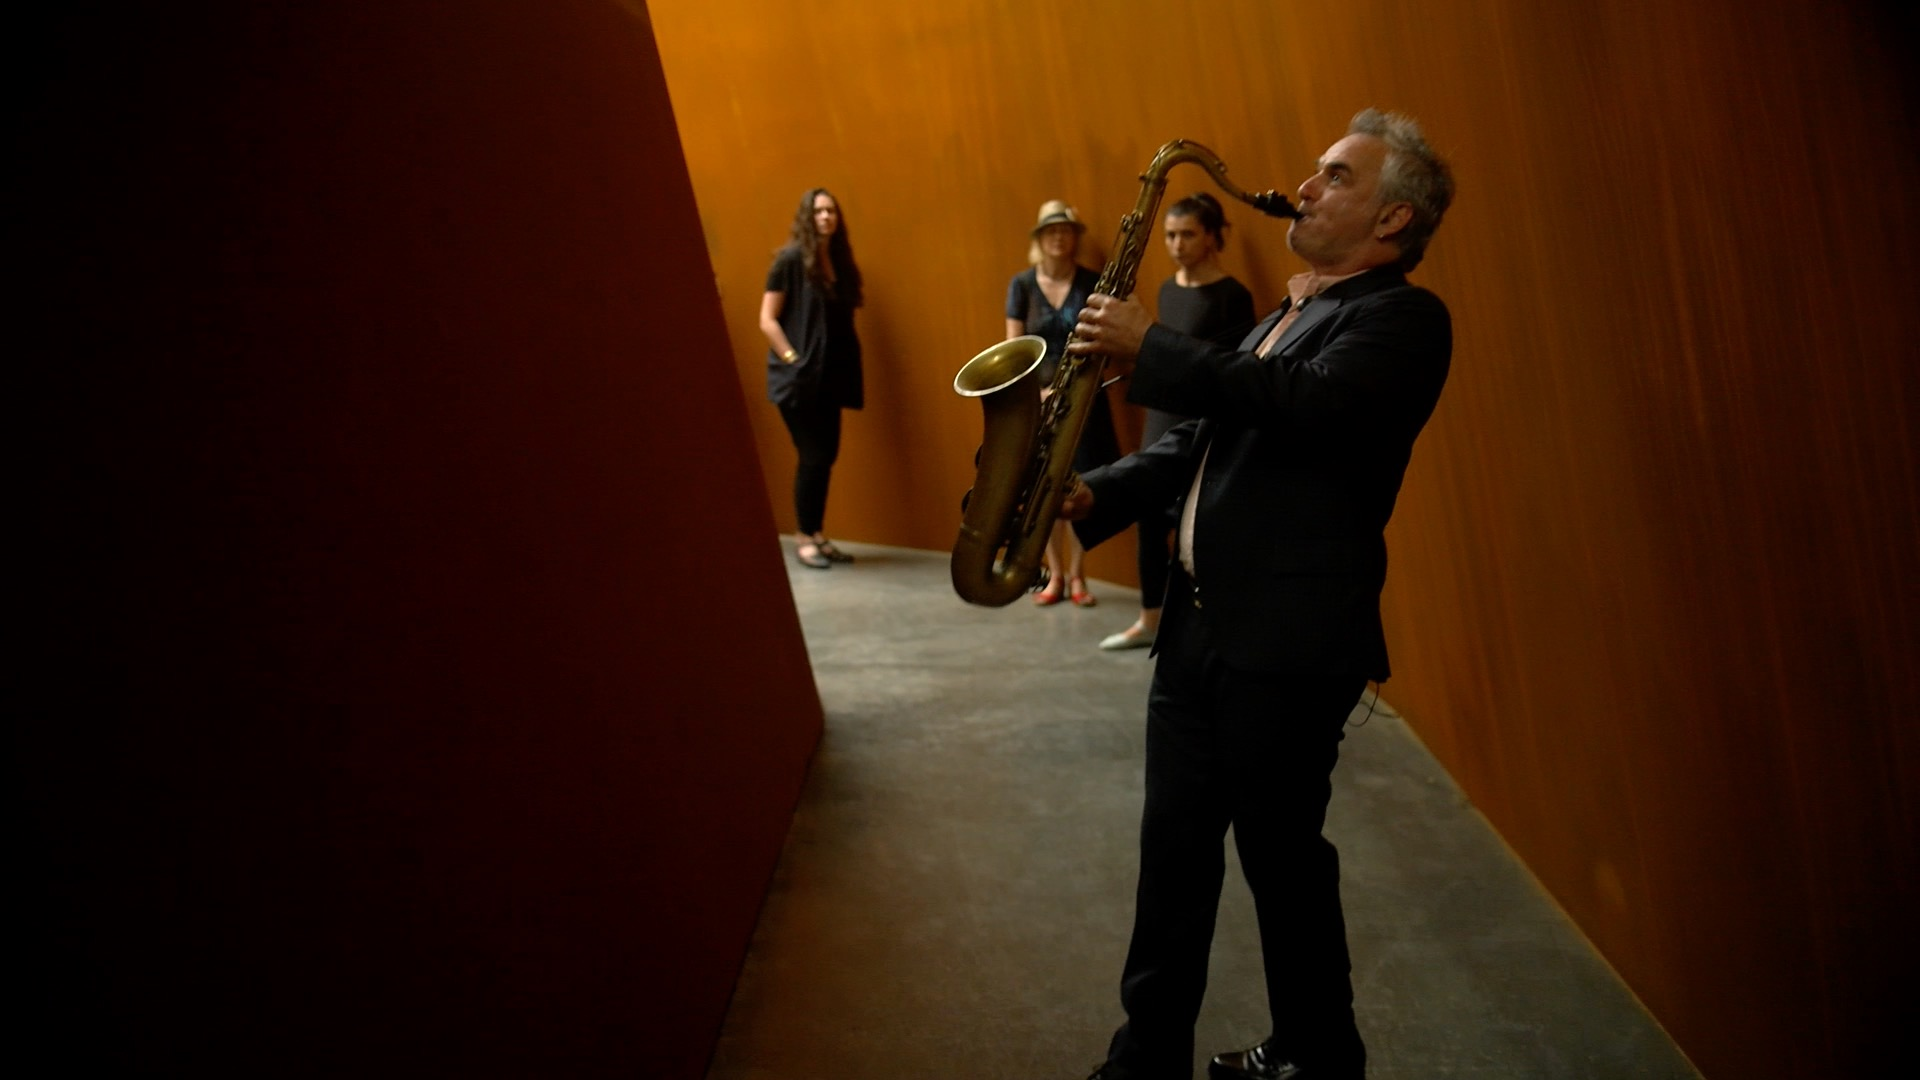 Audience members accompany Fefer as he interacts with Serra's monumental work.